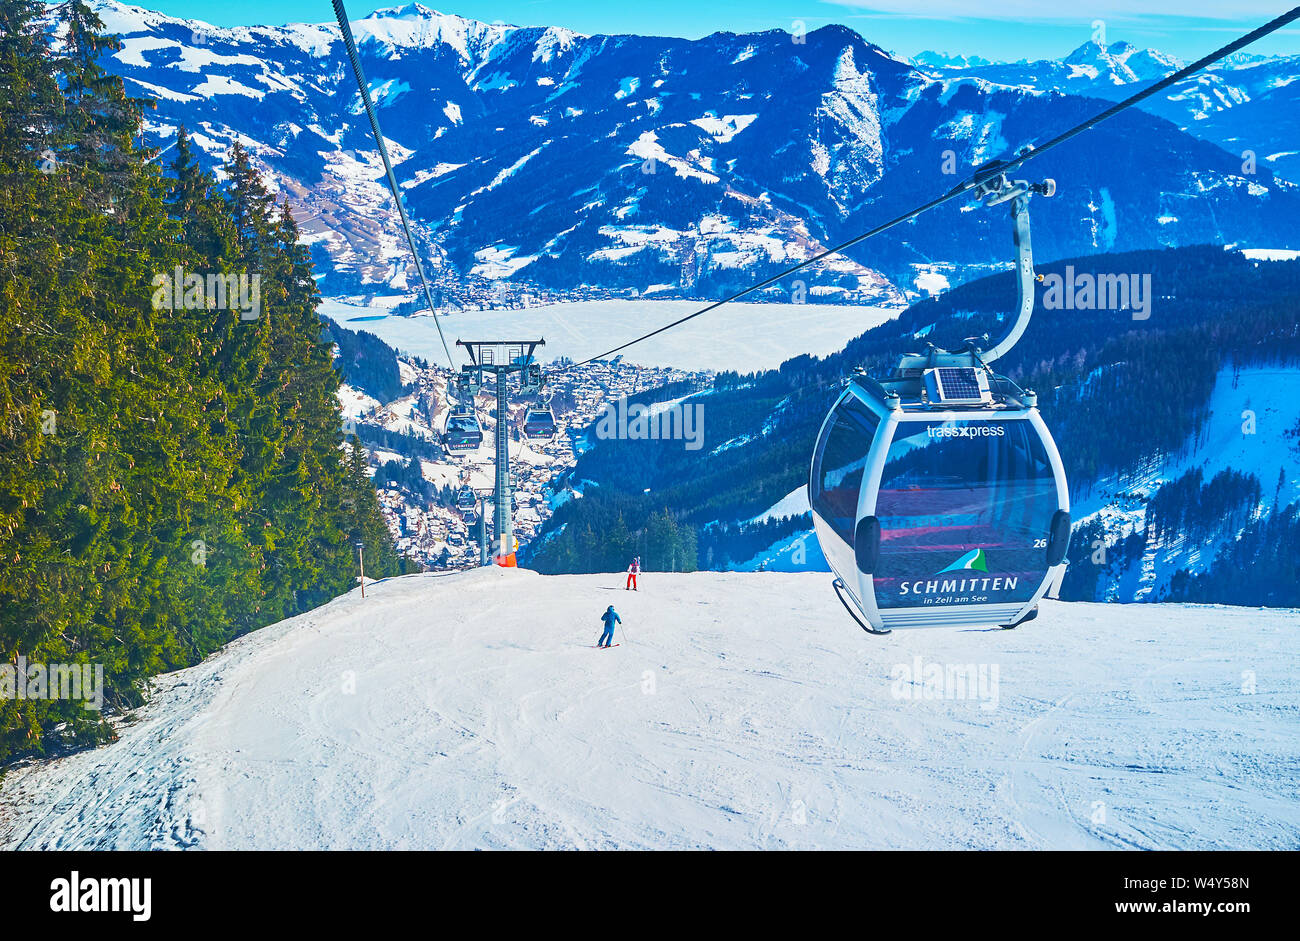 ZELL AM SEE, AUSTRIA - FEBRUARY 28, 2019: The scenic mountain landscapes from the Trassxpress cableway, riding along the snowy slope of Schmitten moun Stock Photo